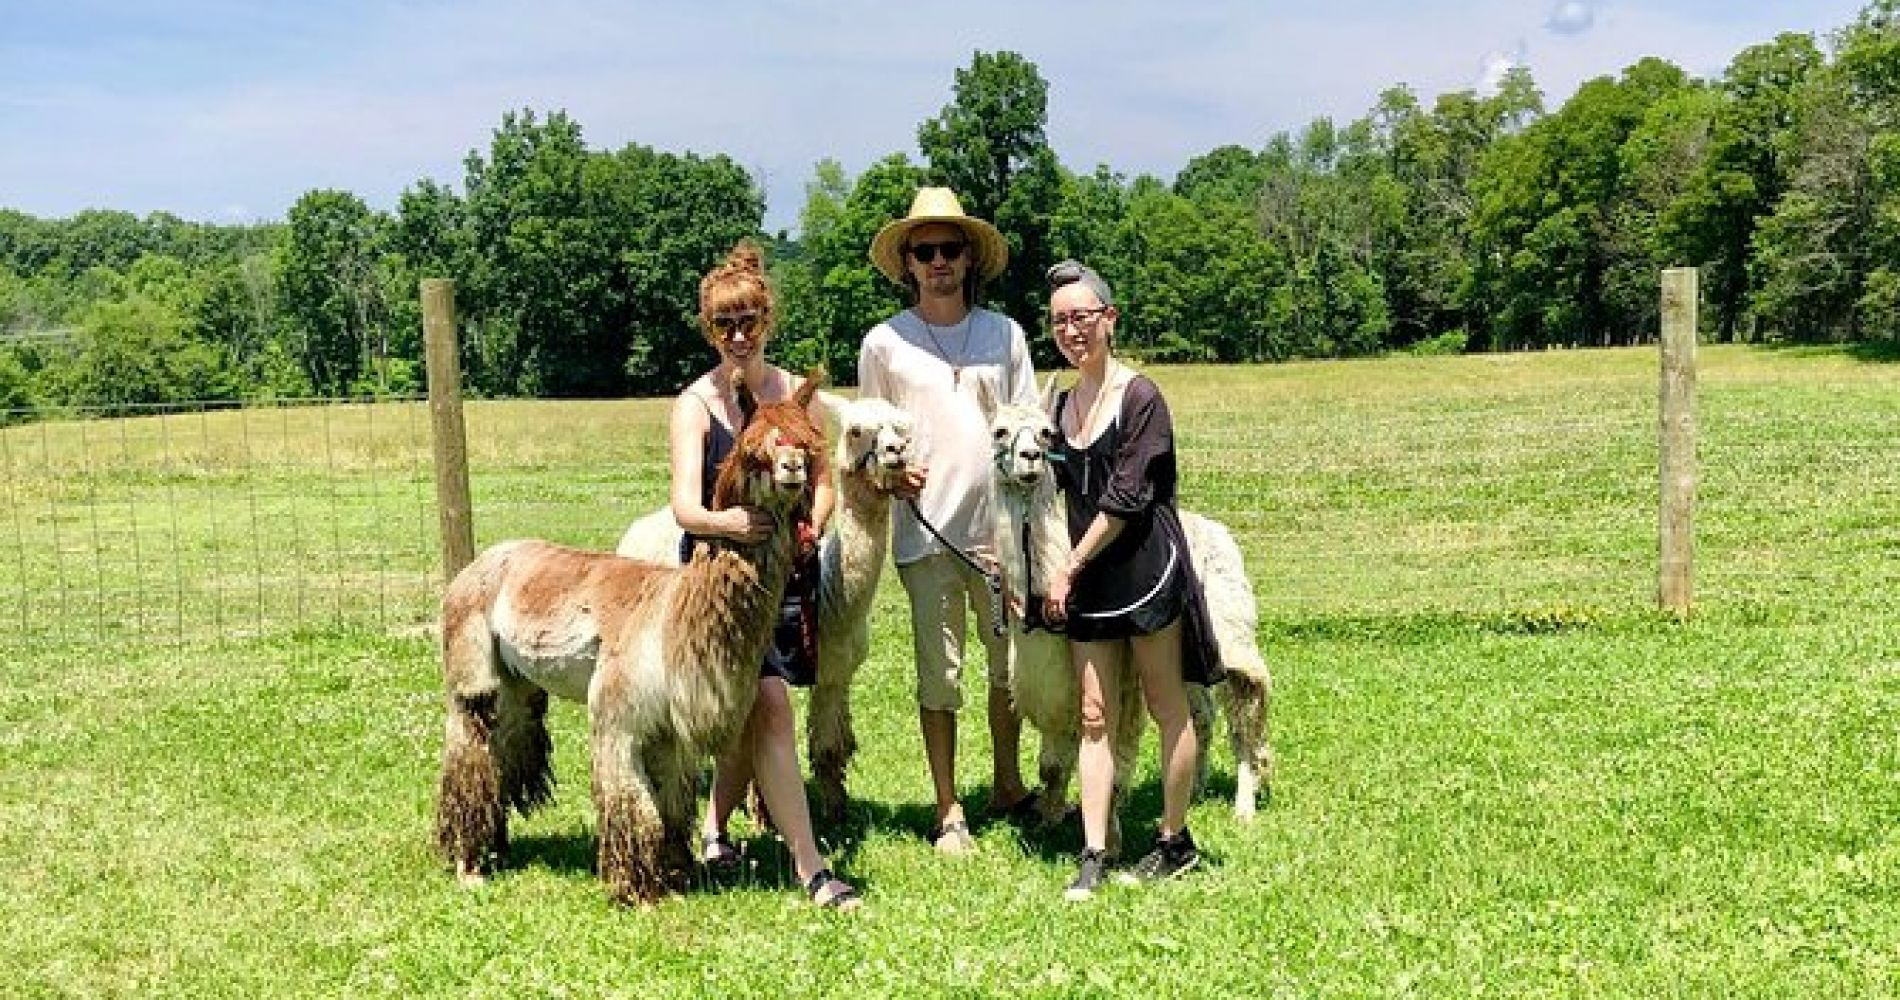 Llama/Alpaca Hike and Farm Tour